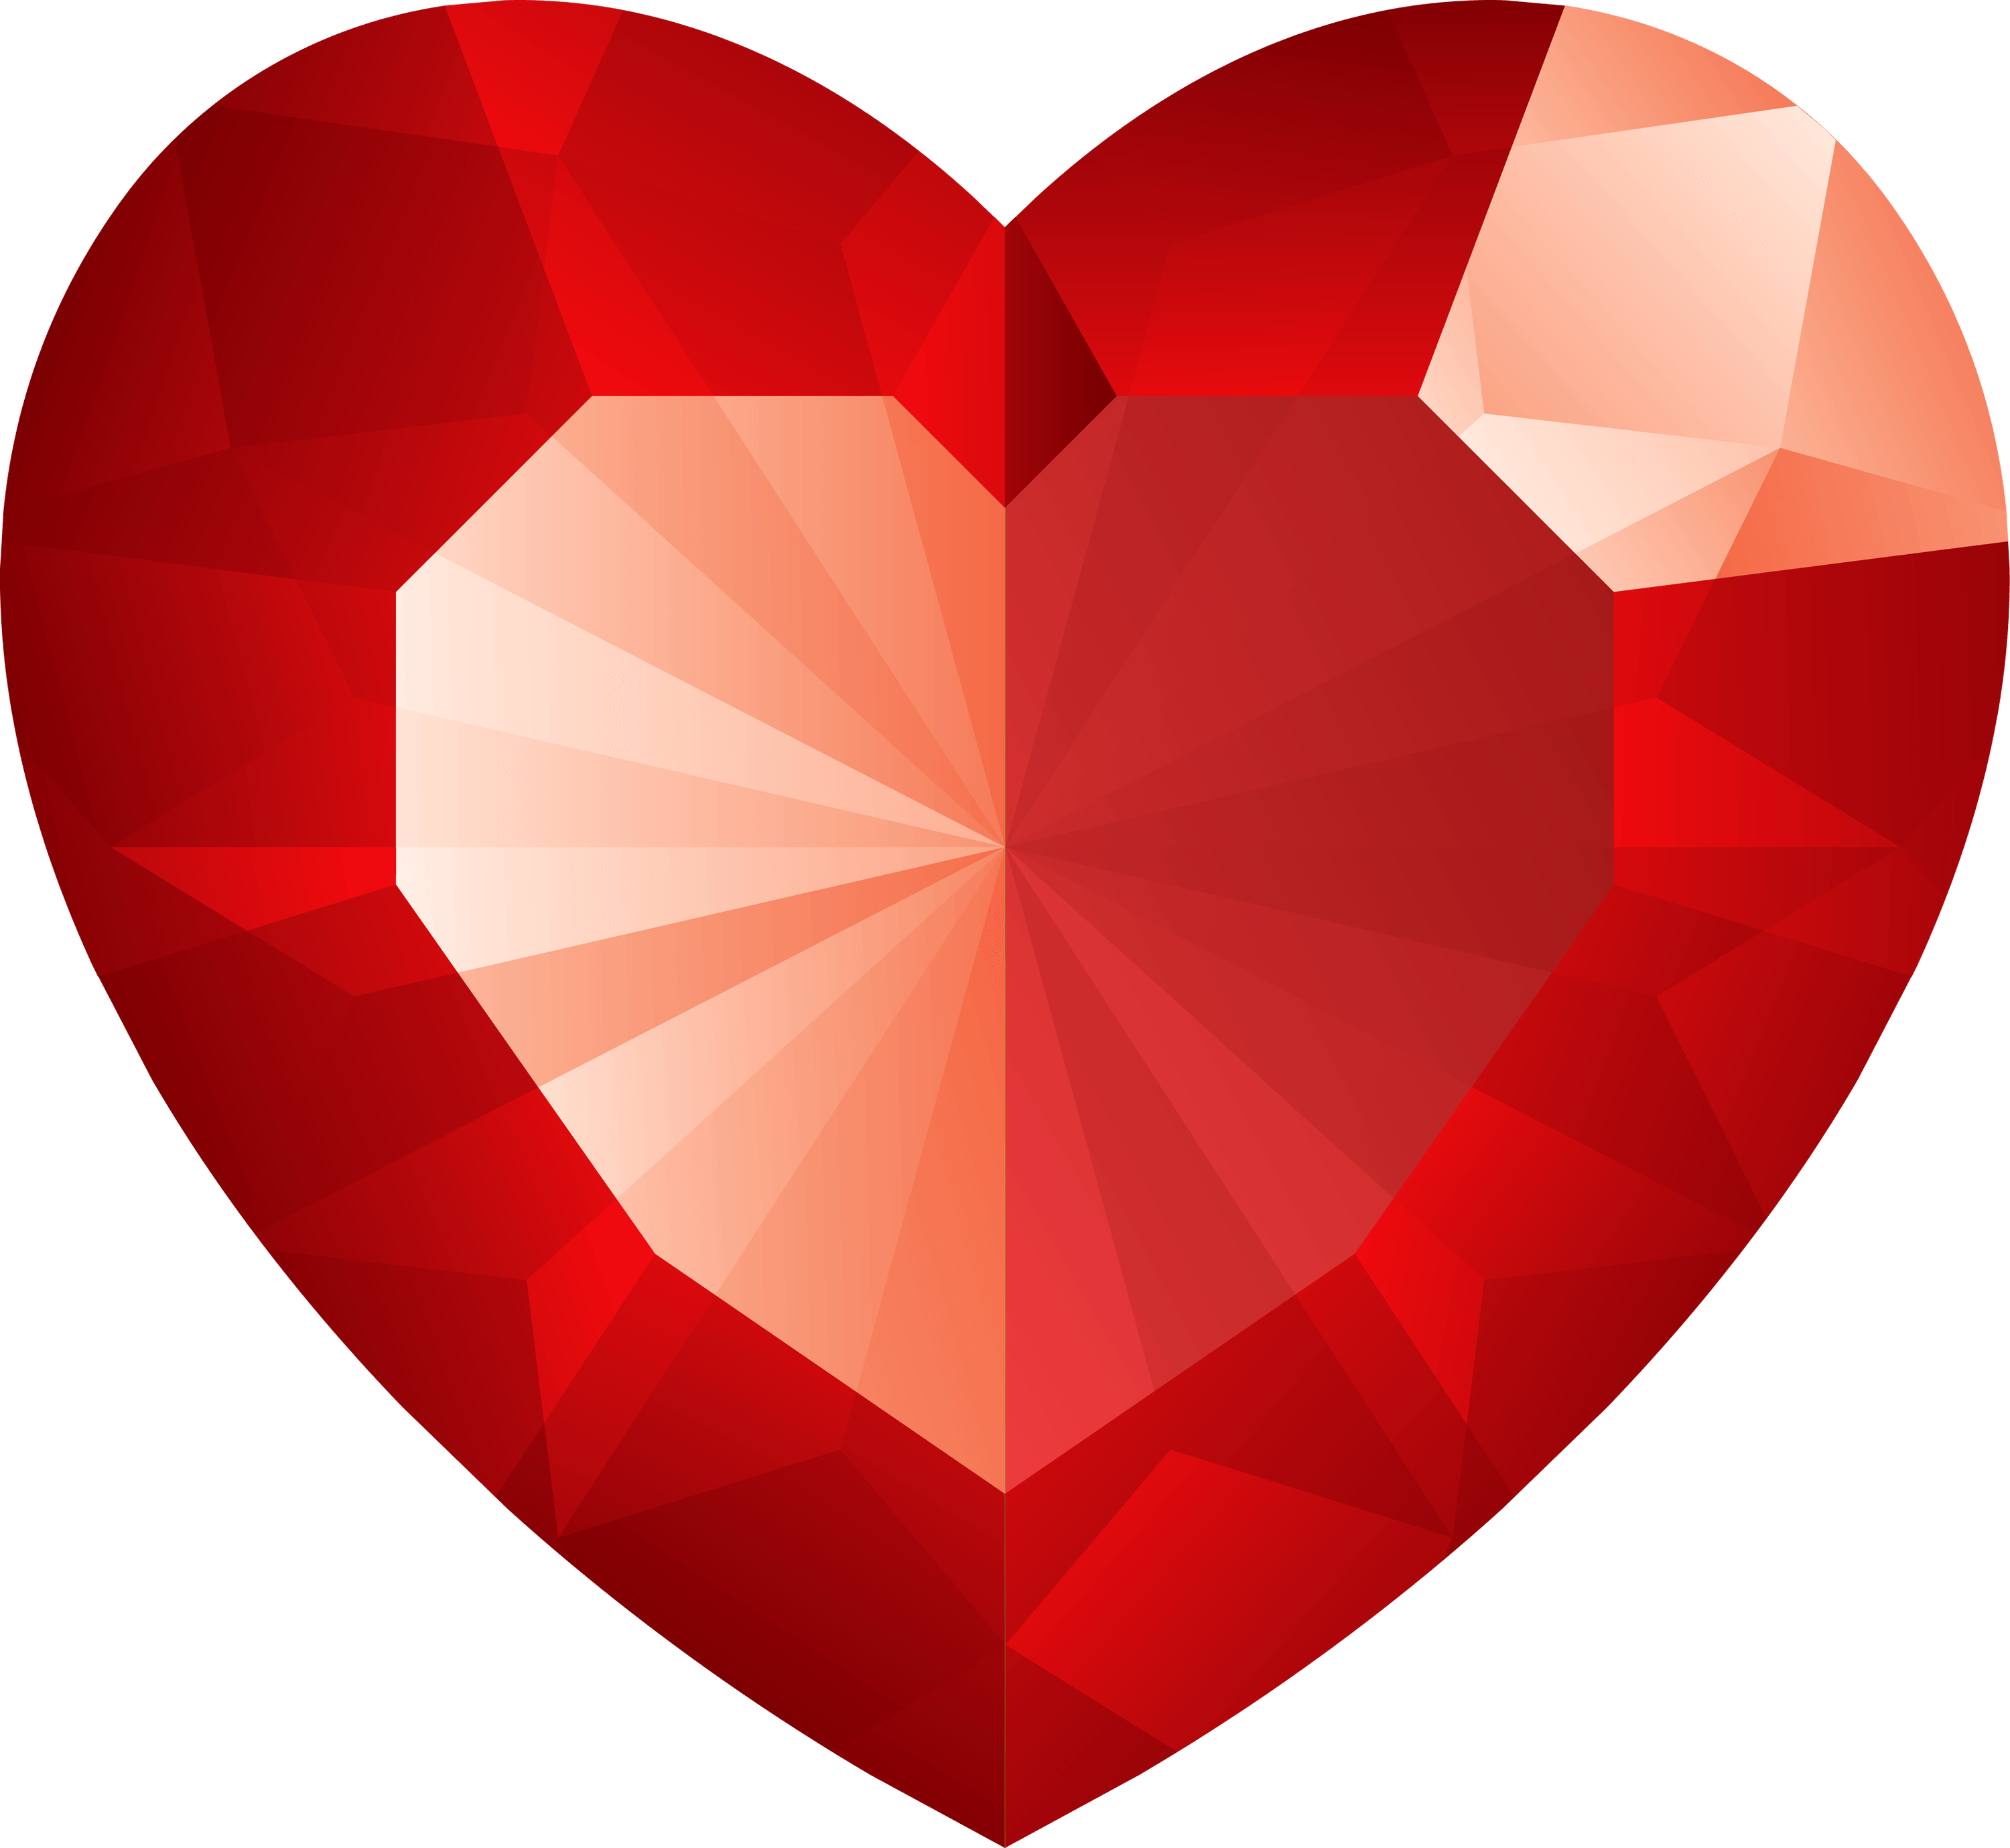 Hearts transparent png. Images stickpng diamond heart